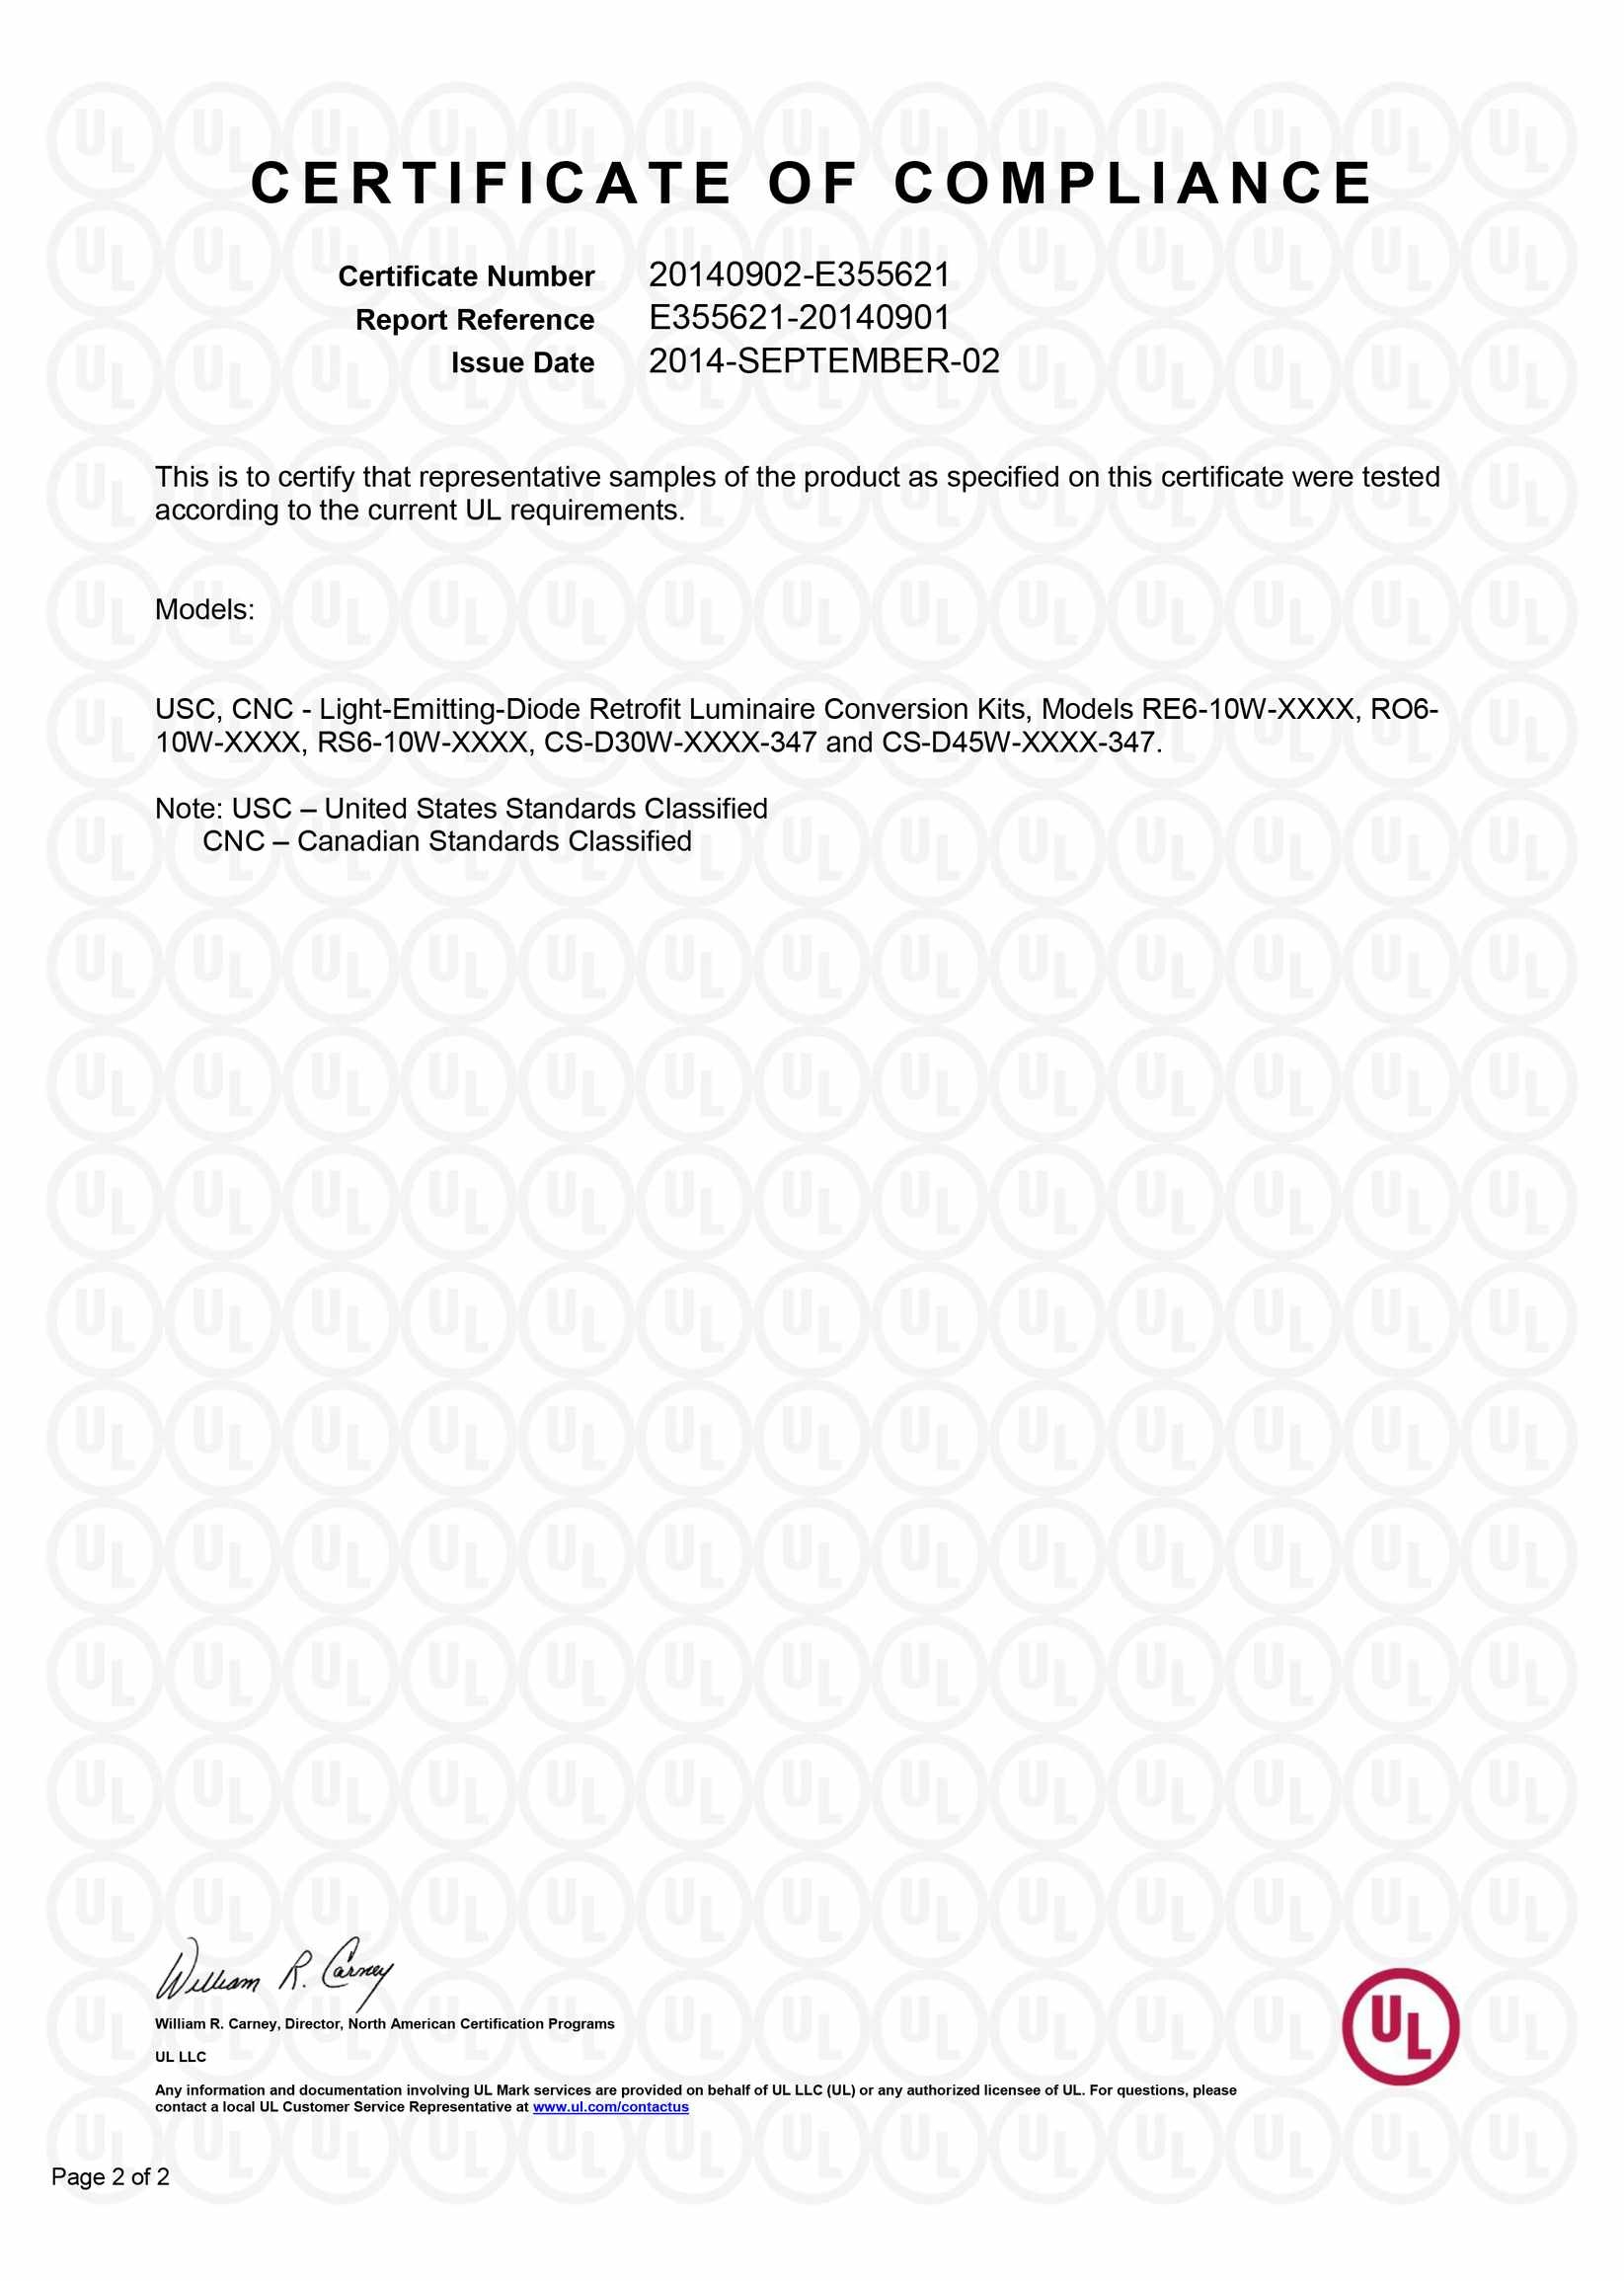 UL Certificate for RE6,RO6,RS6 series retrofit downligh and 347w commercial downlight